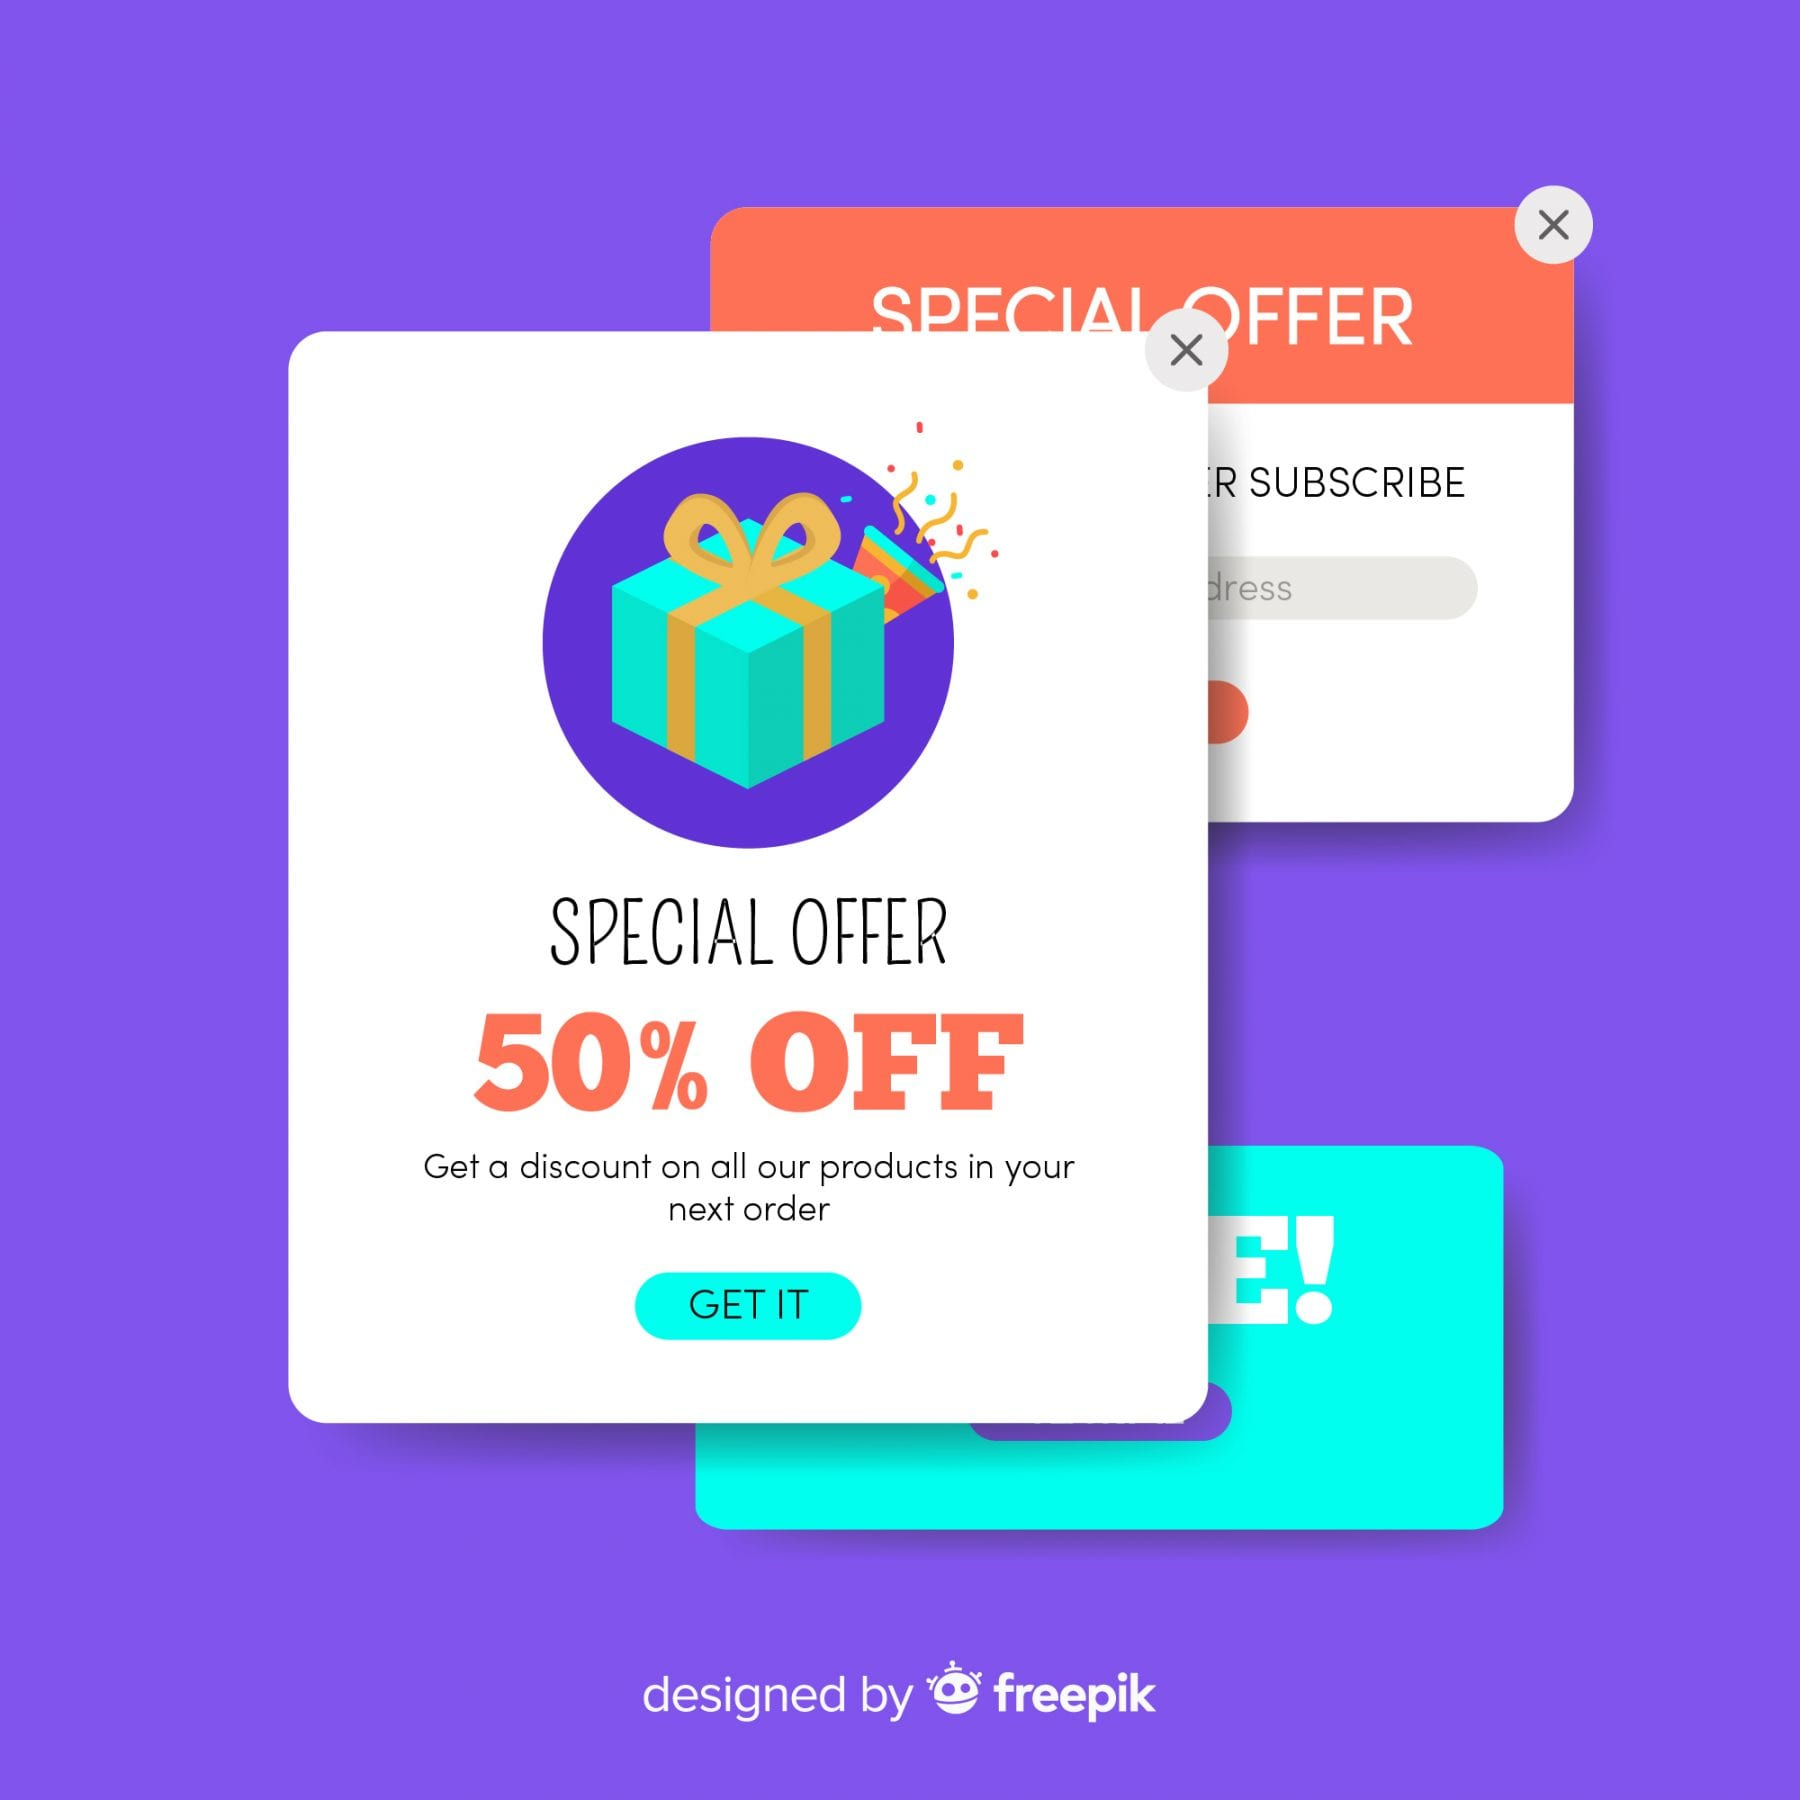 Website pop-ups: the key to design that converts